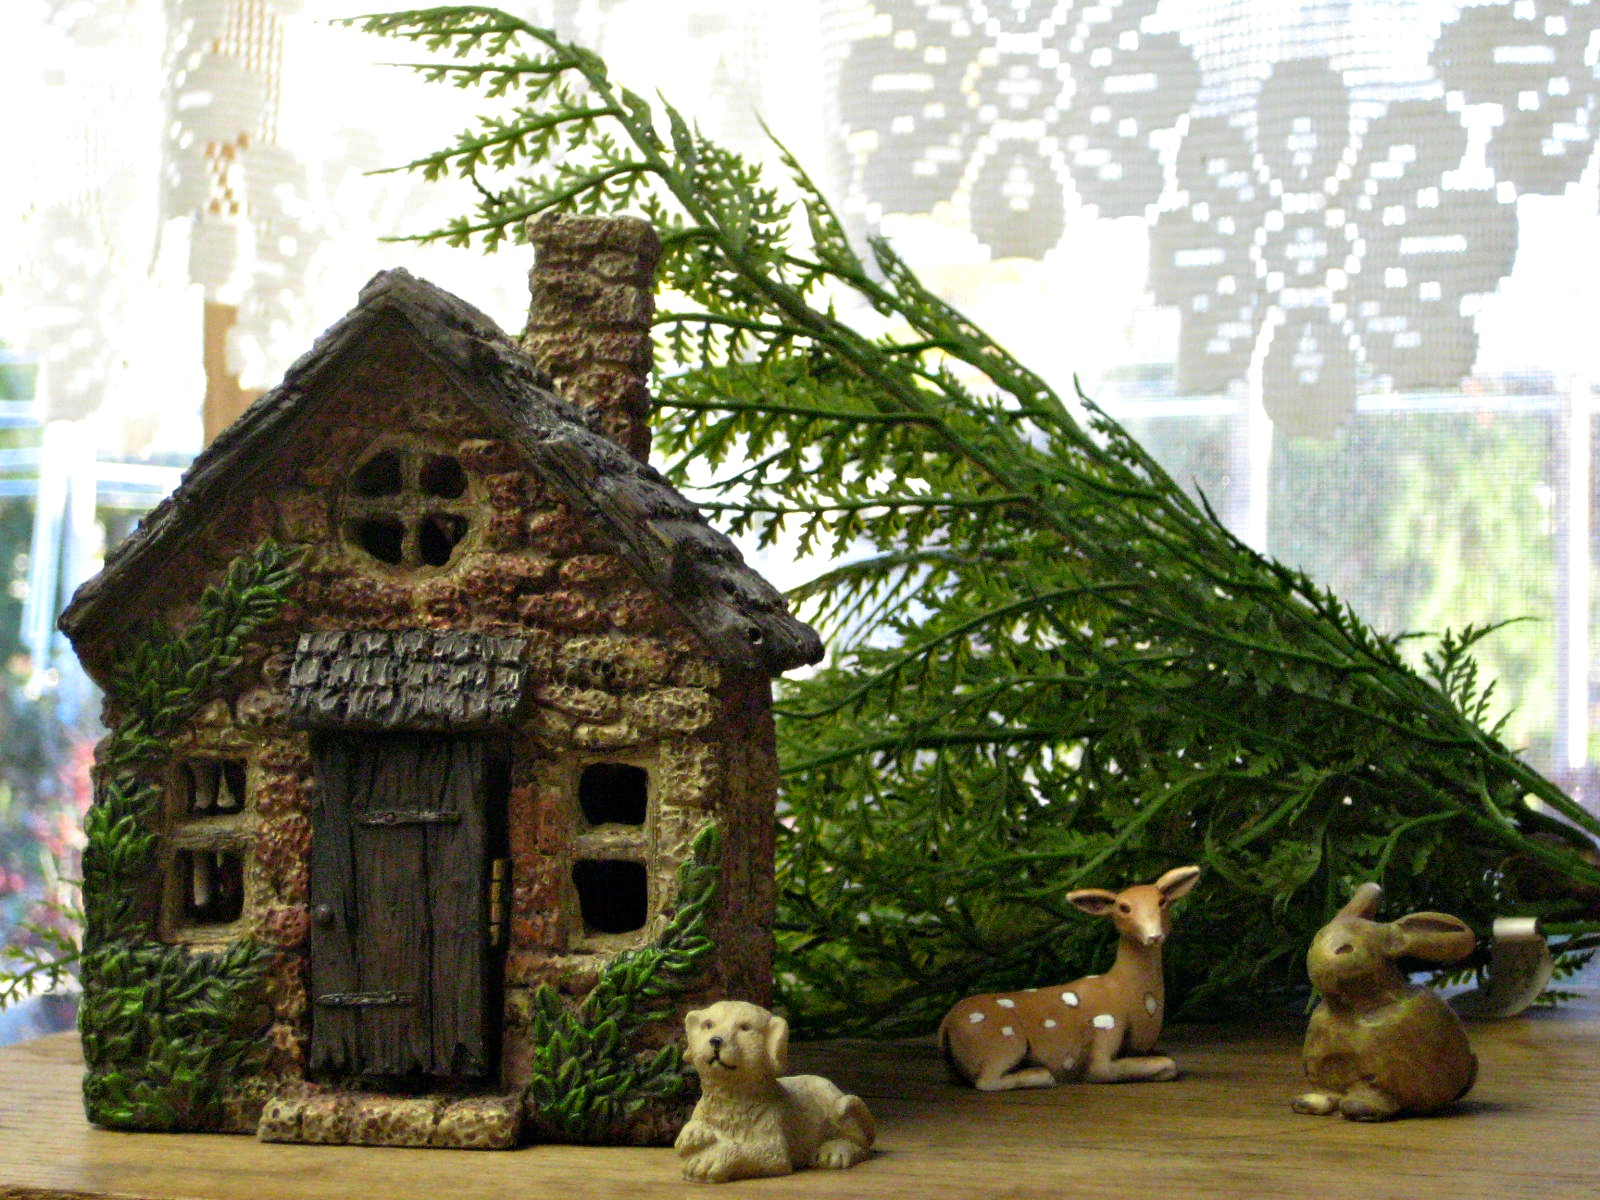 Miniature Garden House and Animals